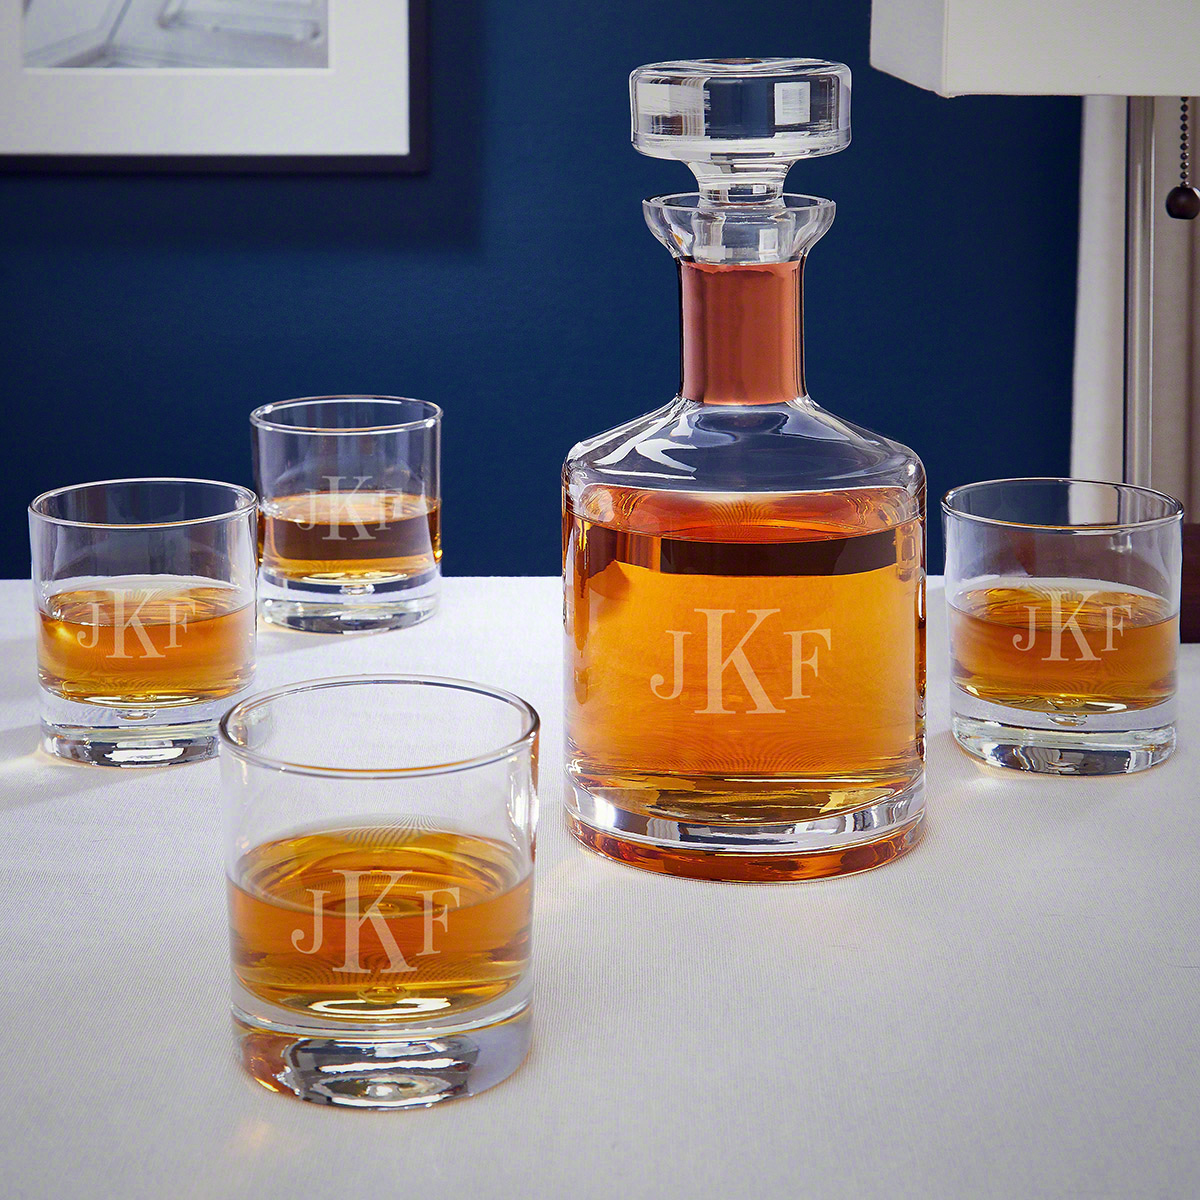 Classic Monogrammed Rocks Glasses and Belmont Decanter with Copper Collar